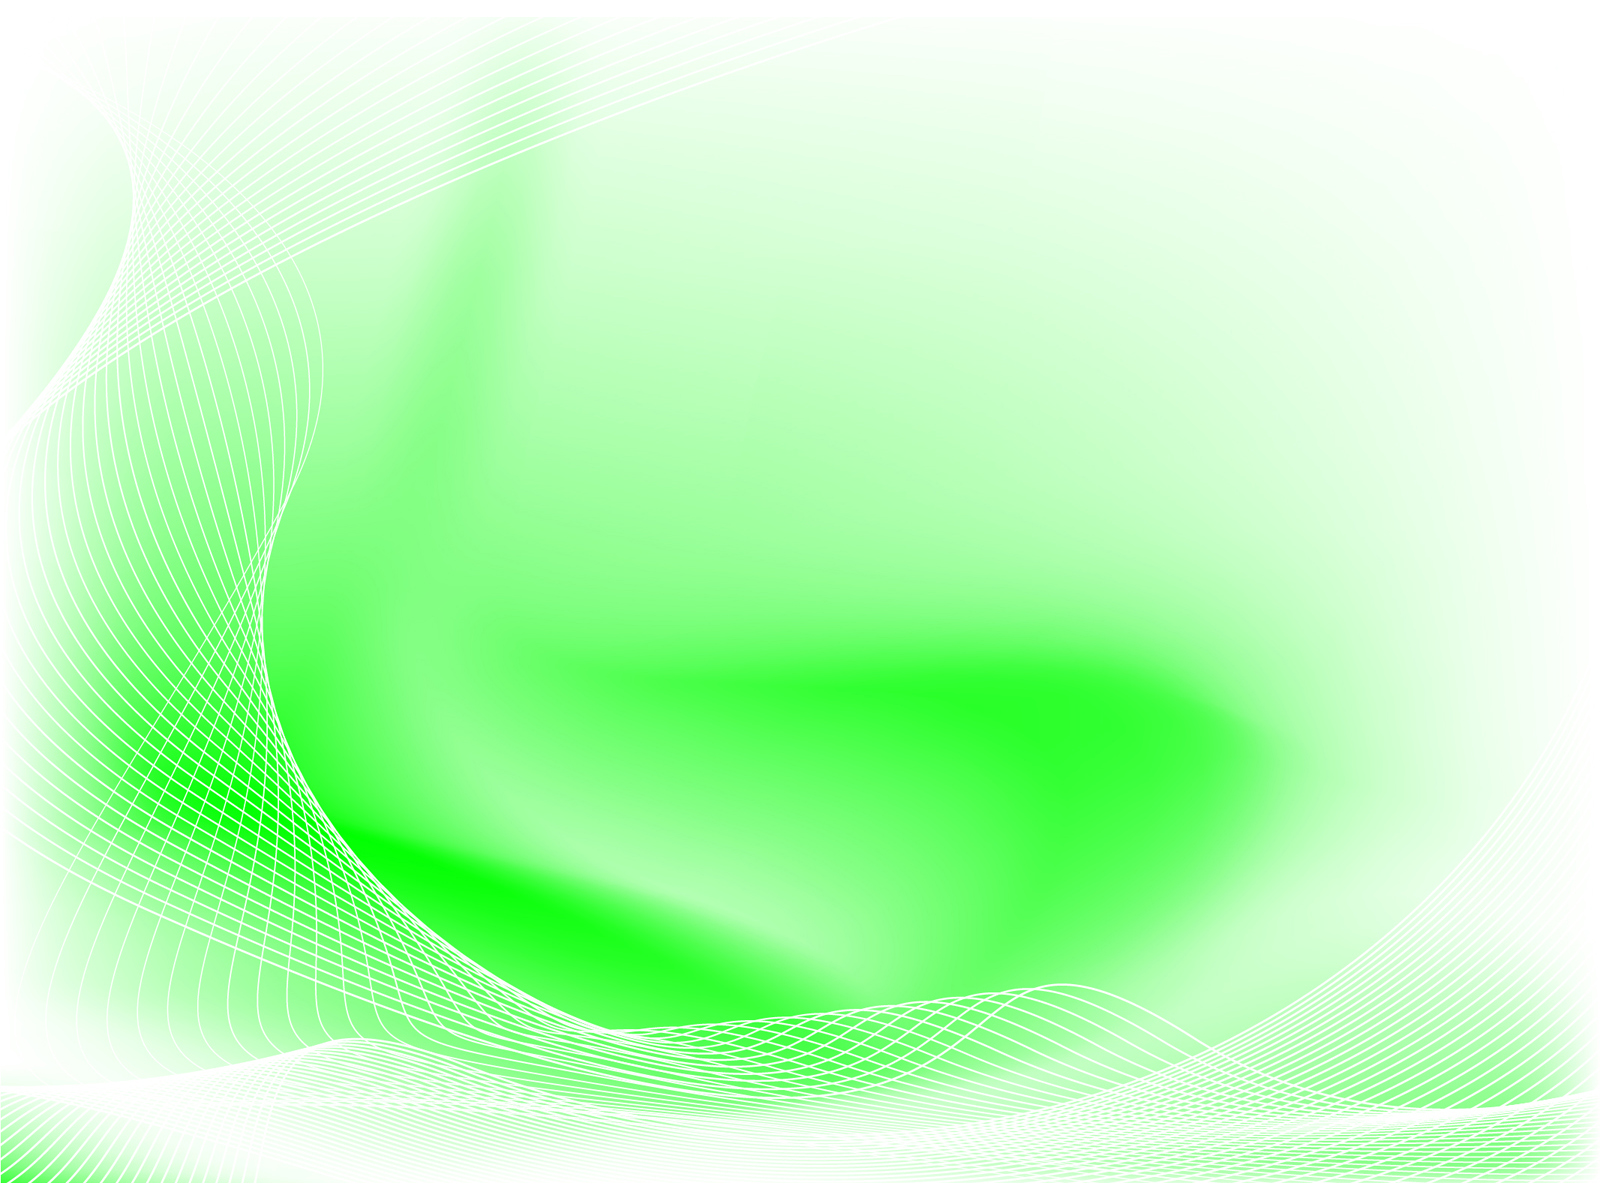 Green smoke powerpoint design ppt backgrounds abstract for Green design